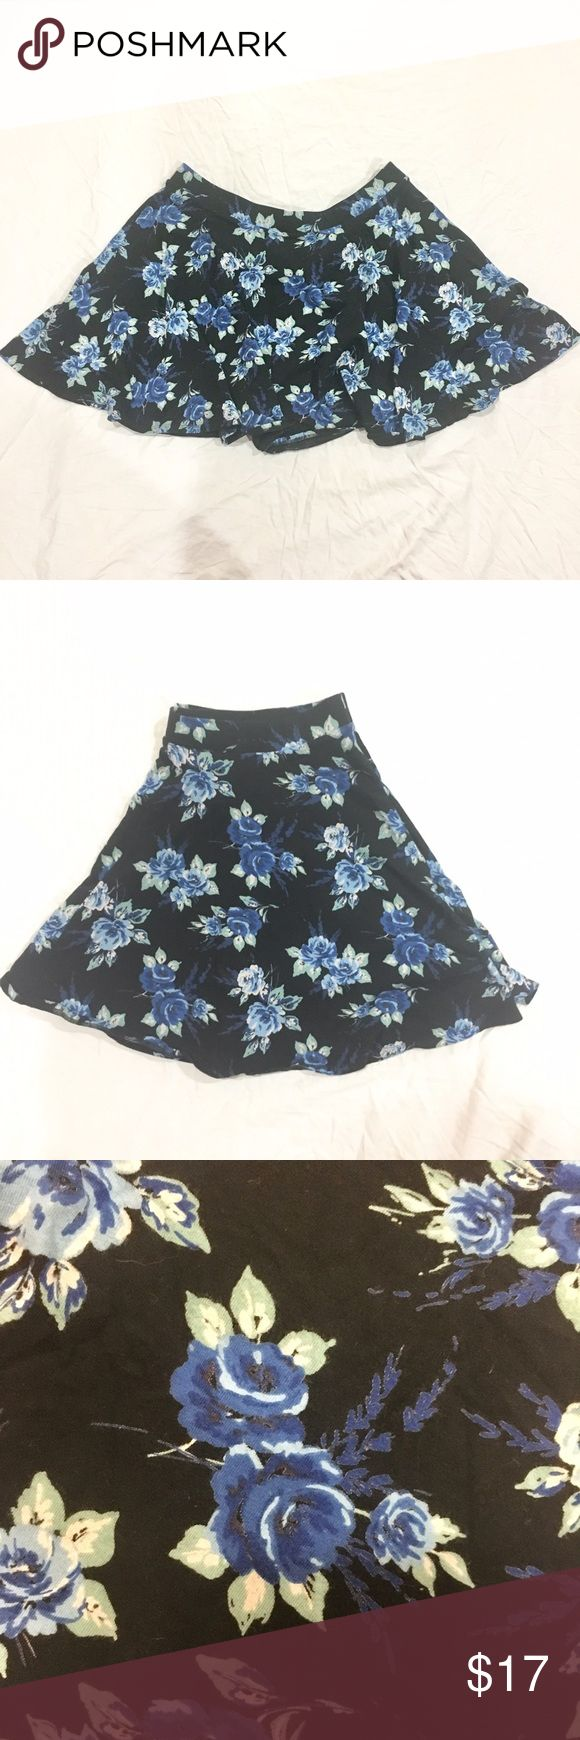 """Floral skater skirt Black skater skirt with blue floral pattern. Has a stretchy waistband. Waist: 17 1/2"""" across, length: 18"""". Never worn, in great condition. Feel free to make me a reasonable offer 💕 LC Lauren Conrad Skirts Circle & Skater"""